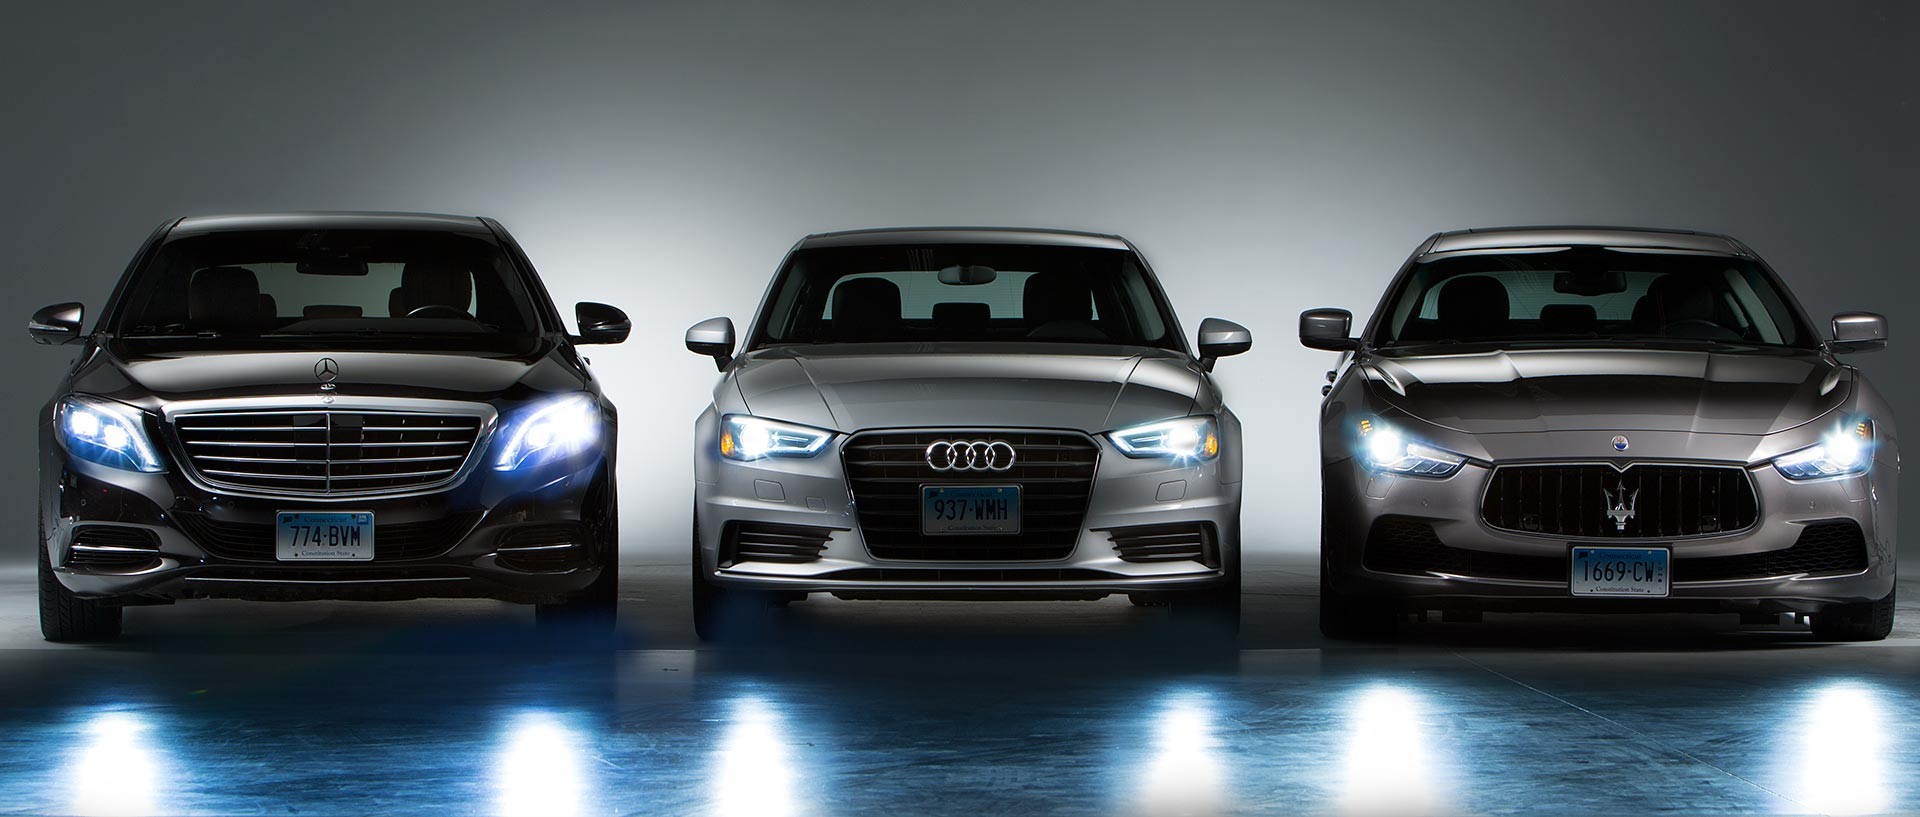 Car Headlight Performance Found To Be Not So Bright